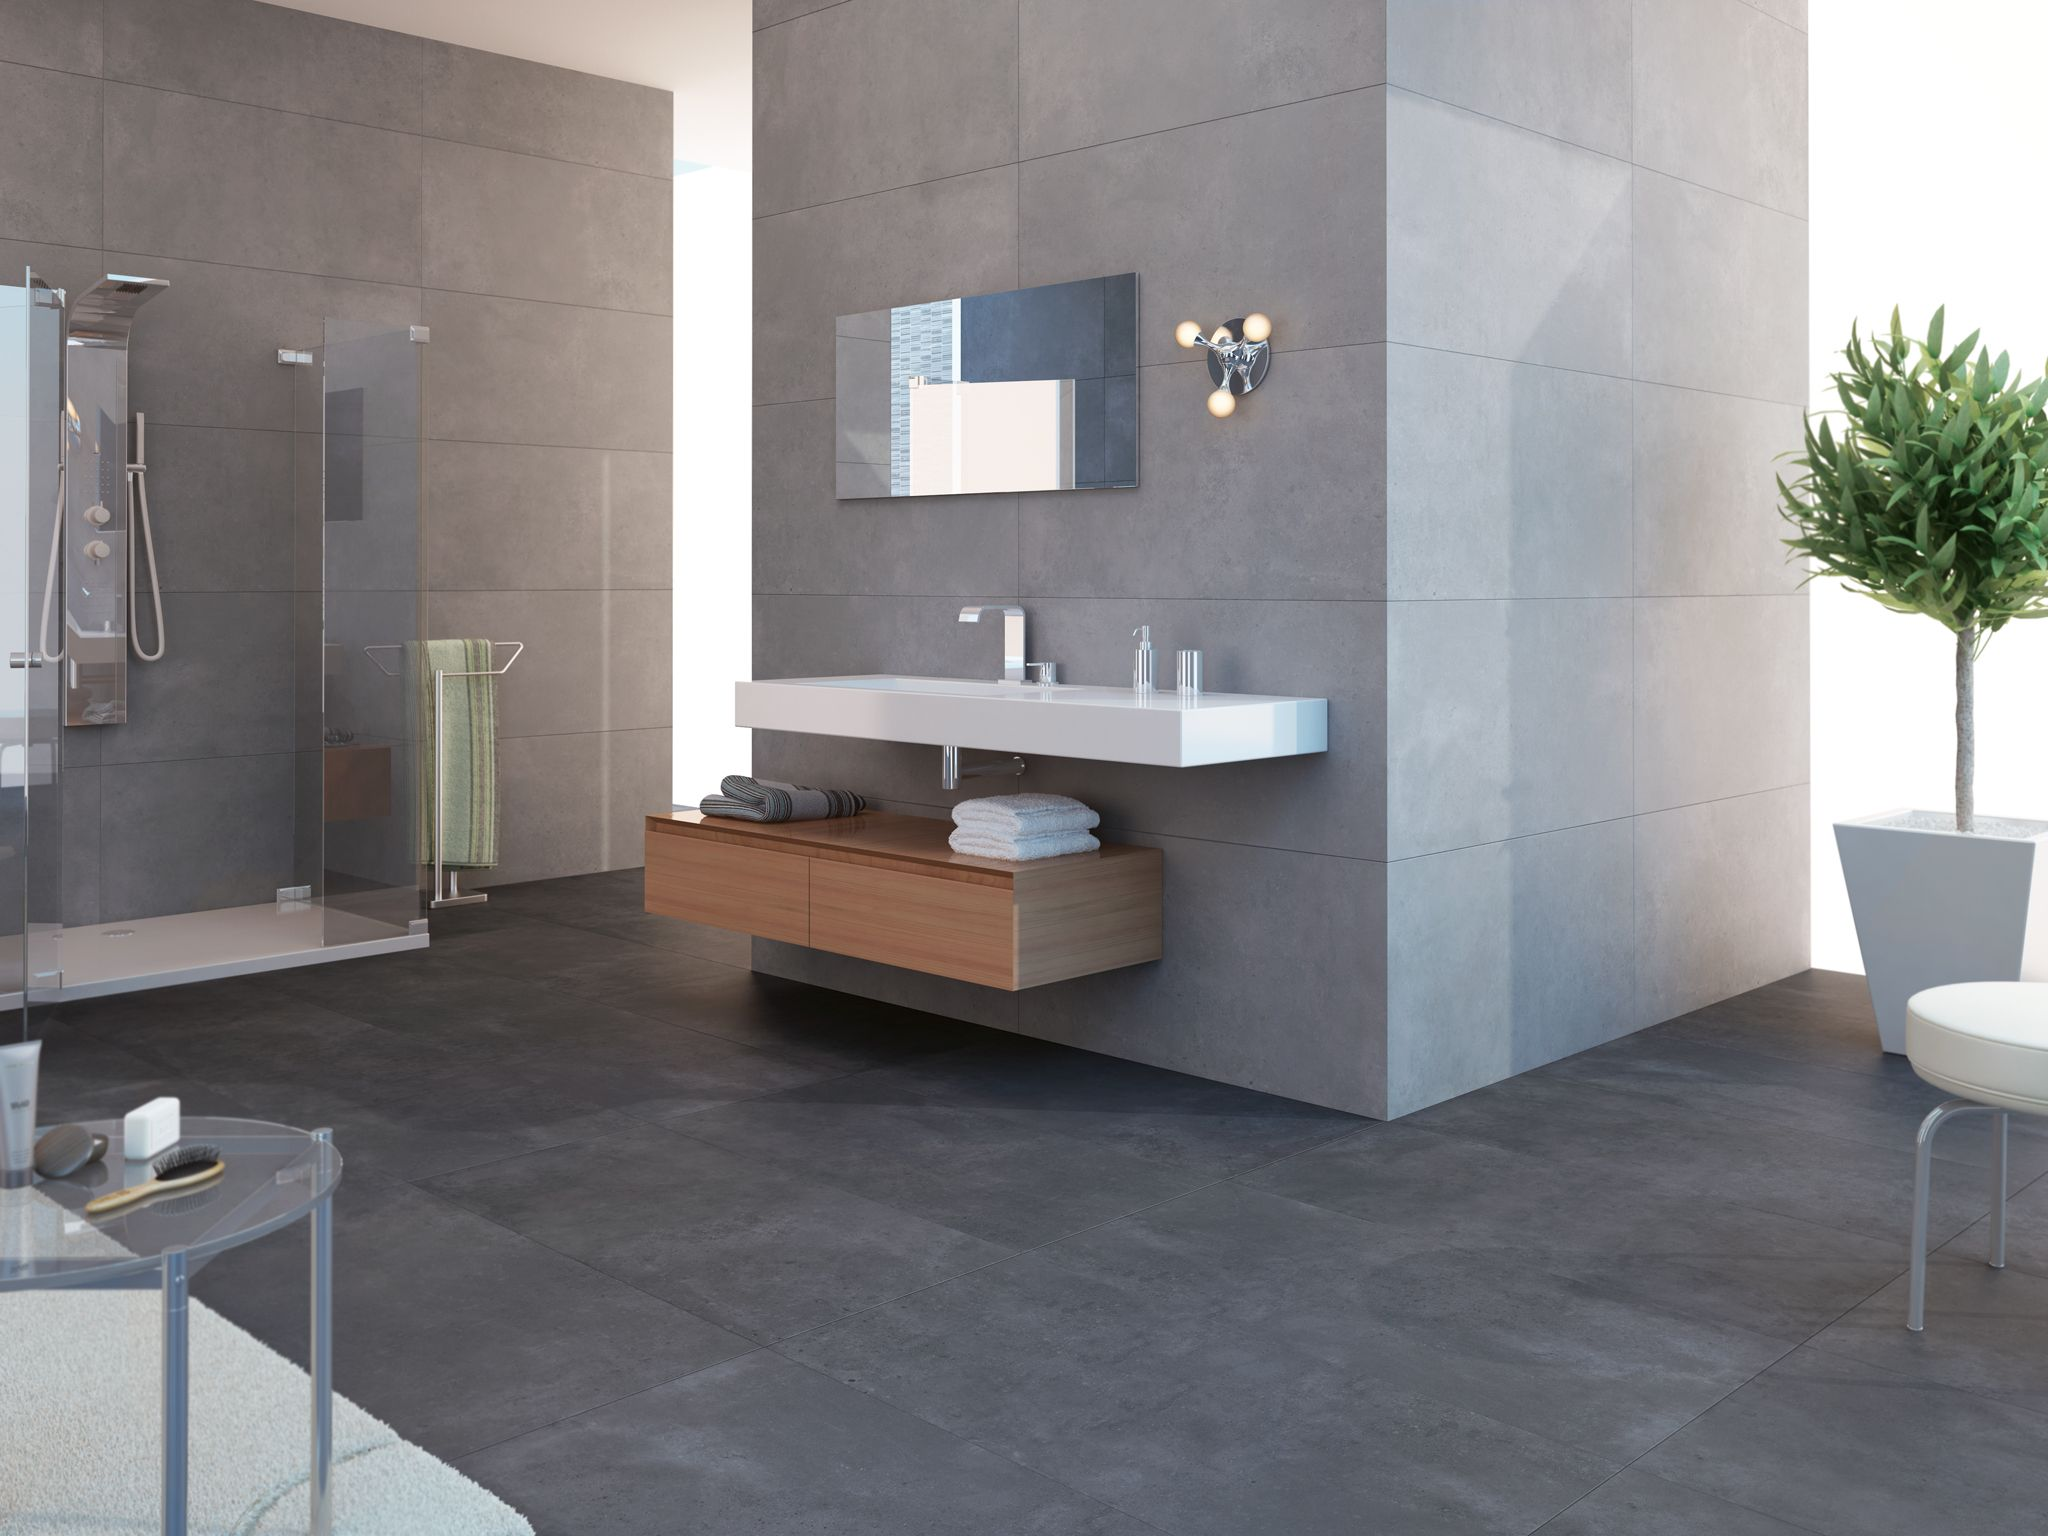 coleccin nexus de porcelnico de cifre cermica nexus collection of porcelain tiles by cifre cermica